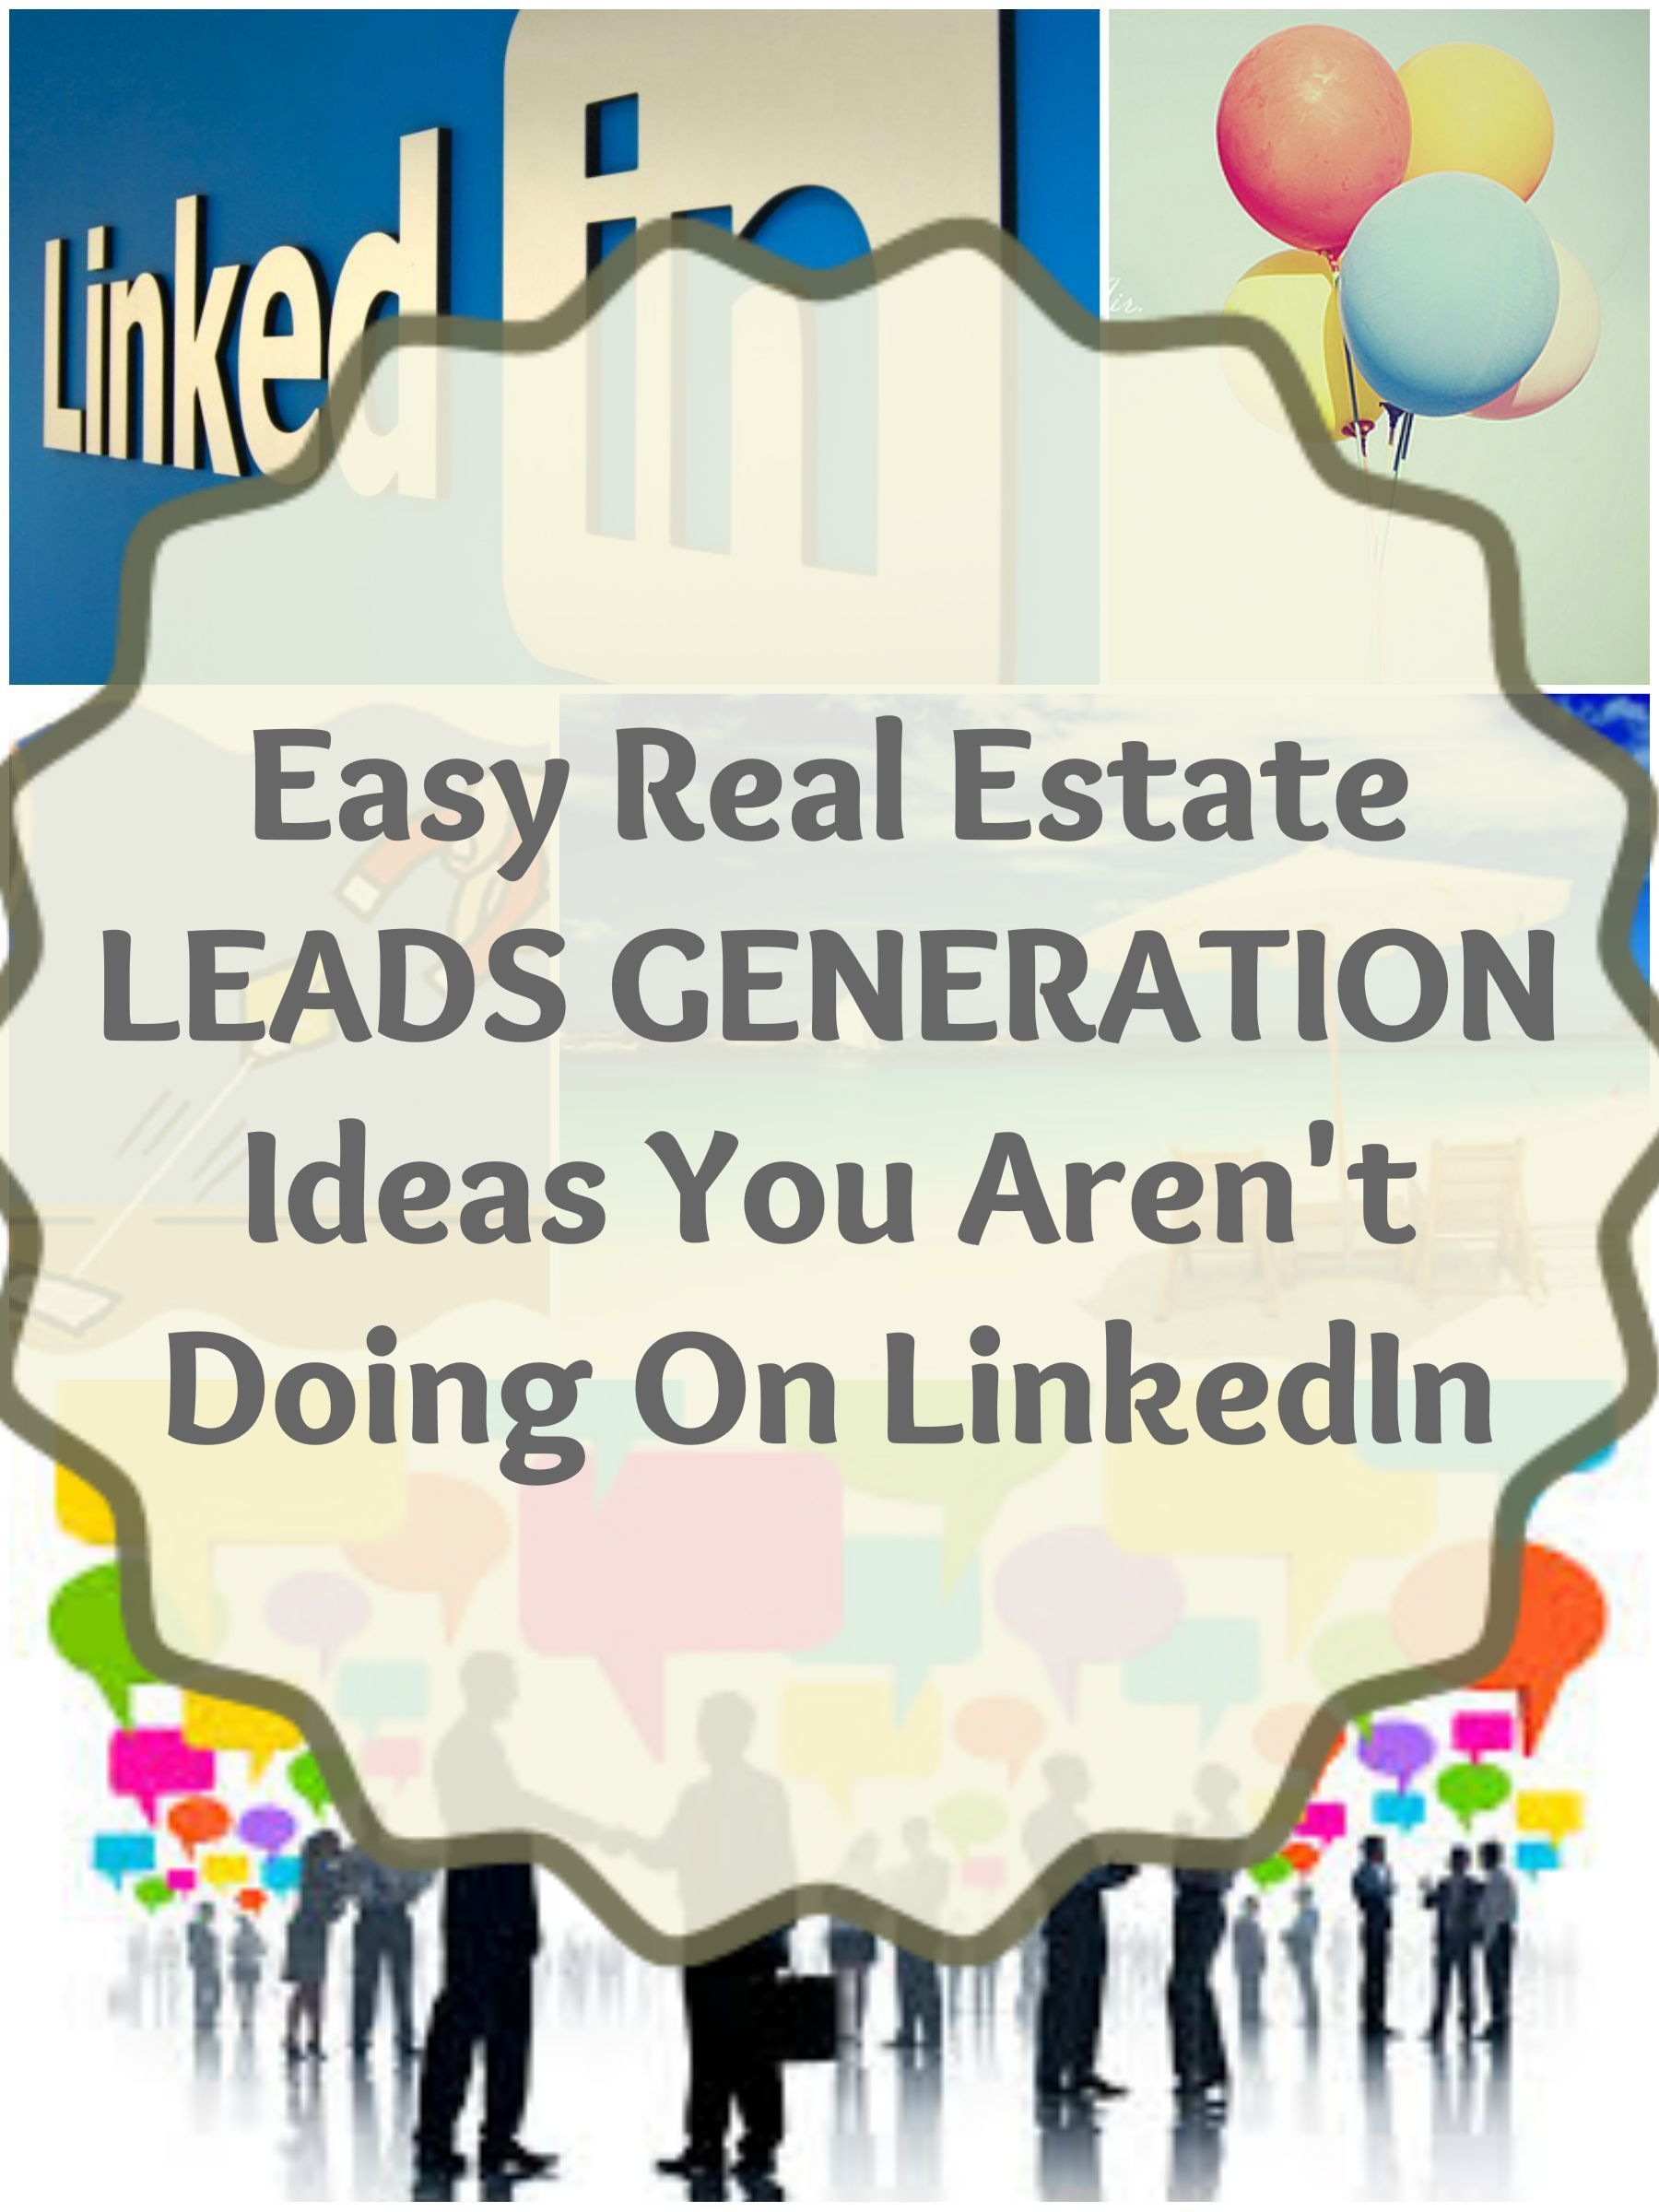 real estate lead generation ideas you aren't doing on linkedin